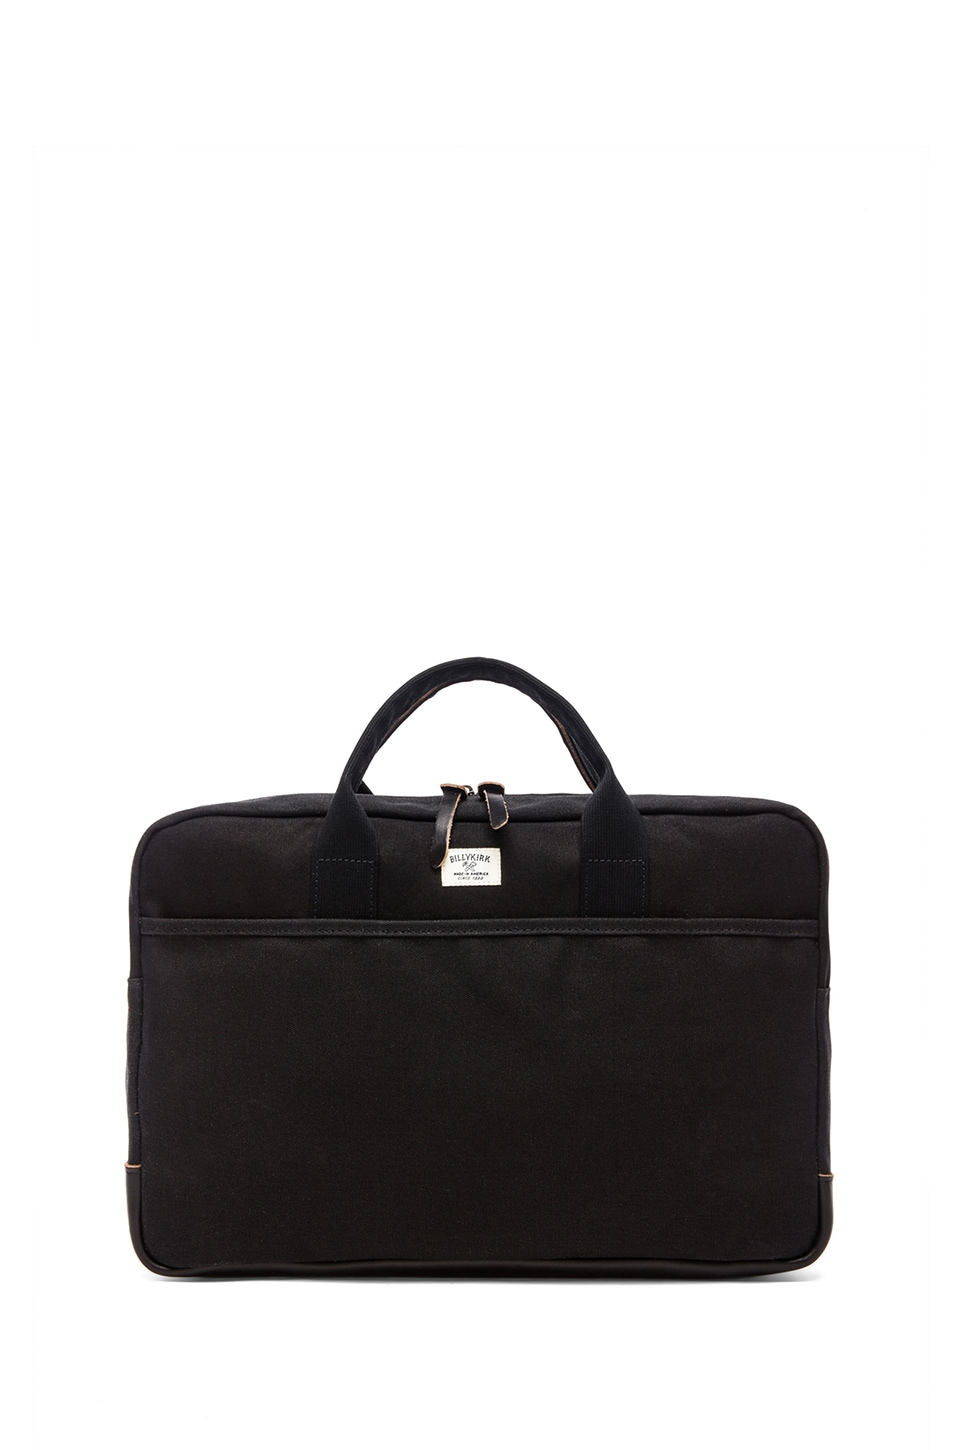 Billykirk No. 332 Attache Case in Black Wax W/ Black